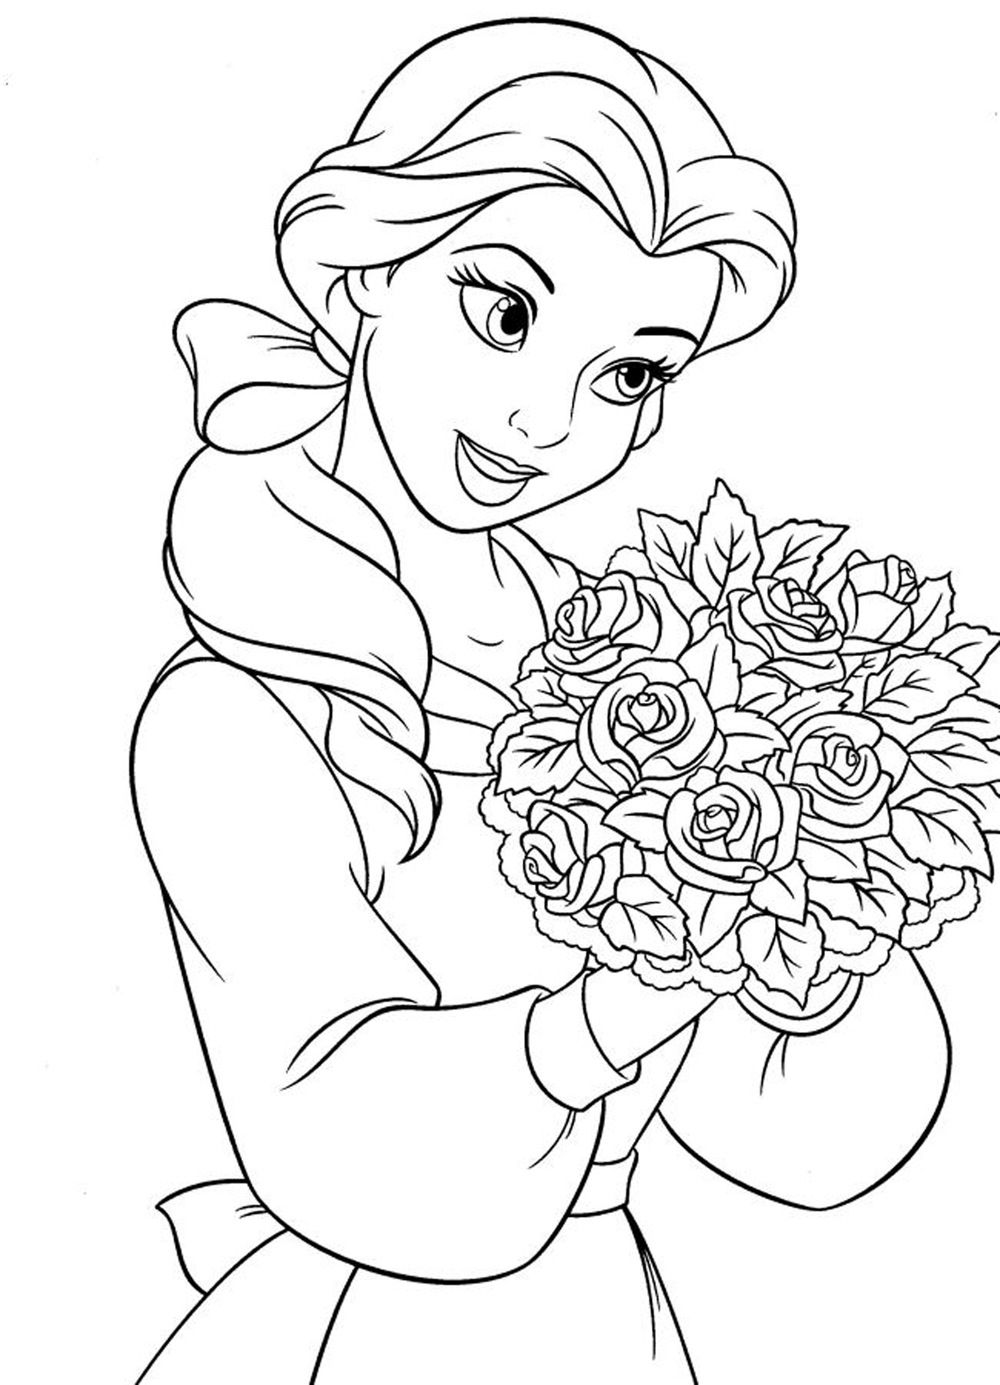 Superb Princess Coloring Pages For Girls   Free Large Images